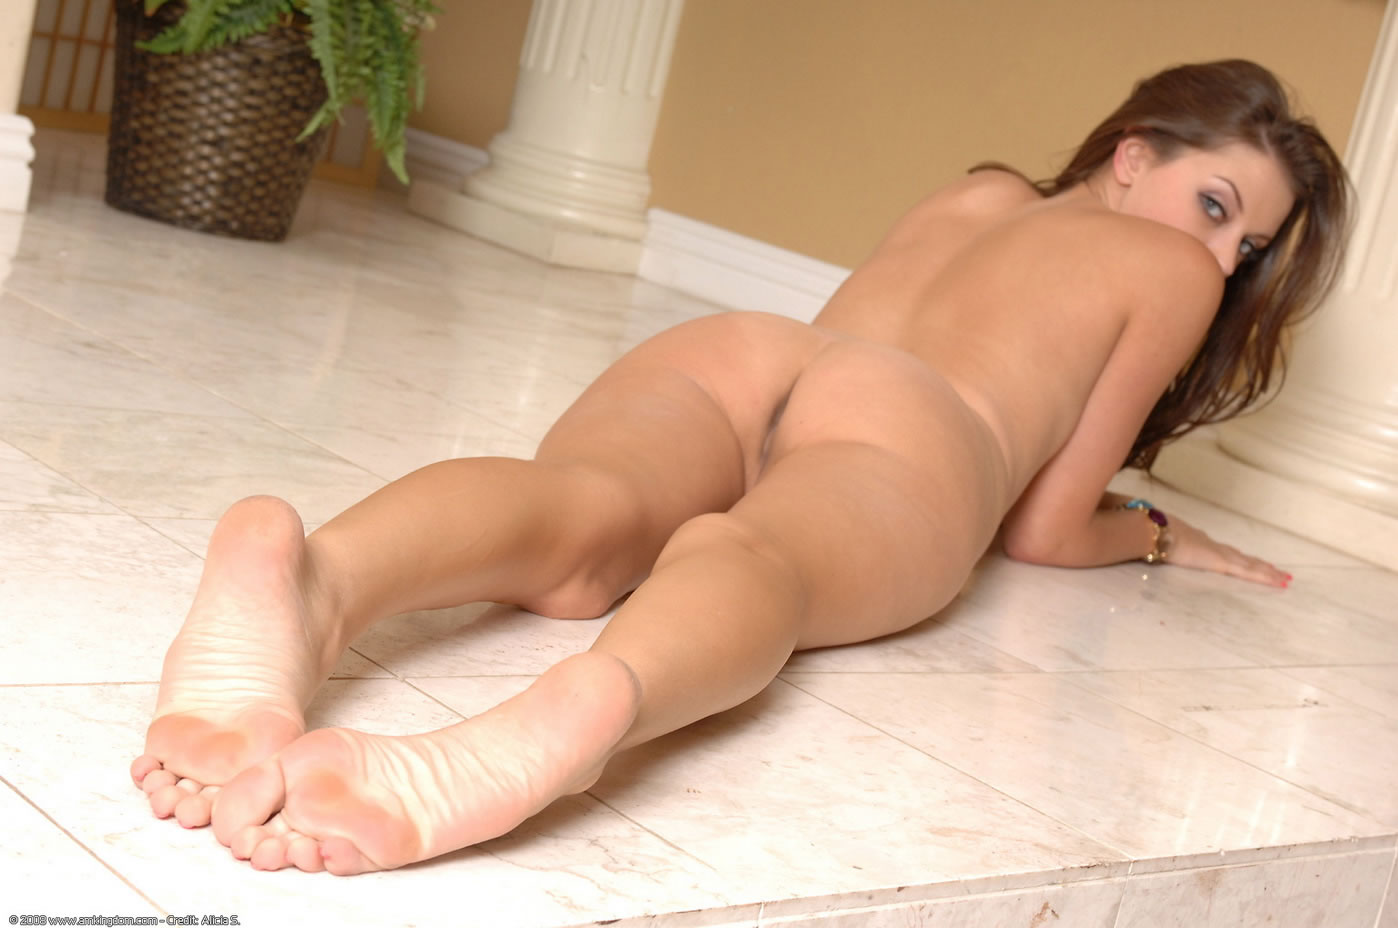 Teen feet are hot naked fuck